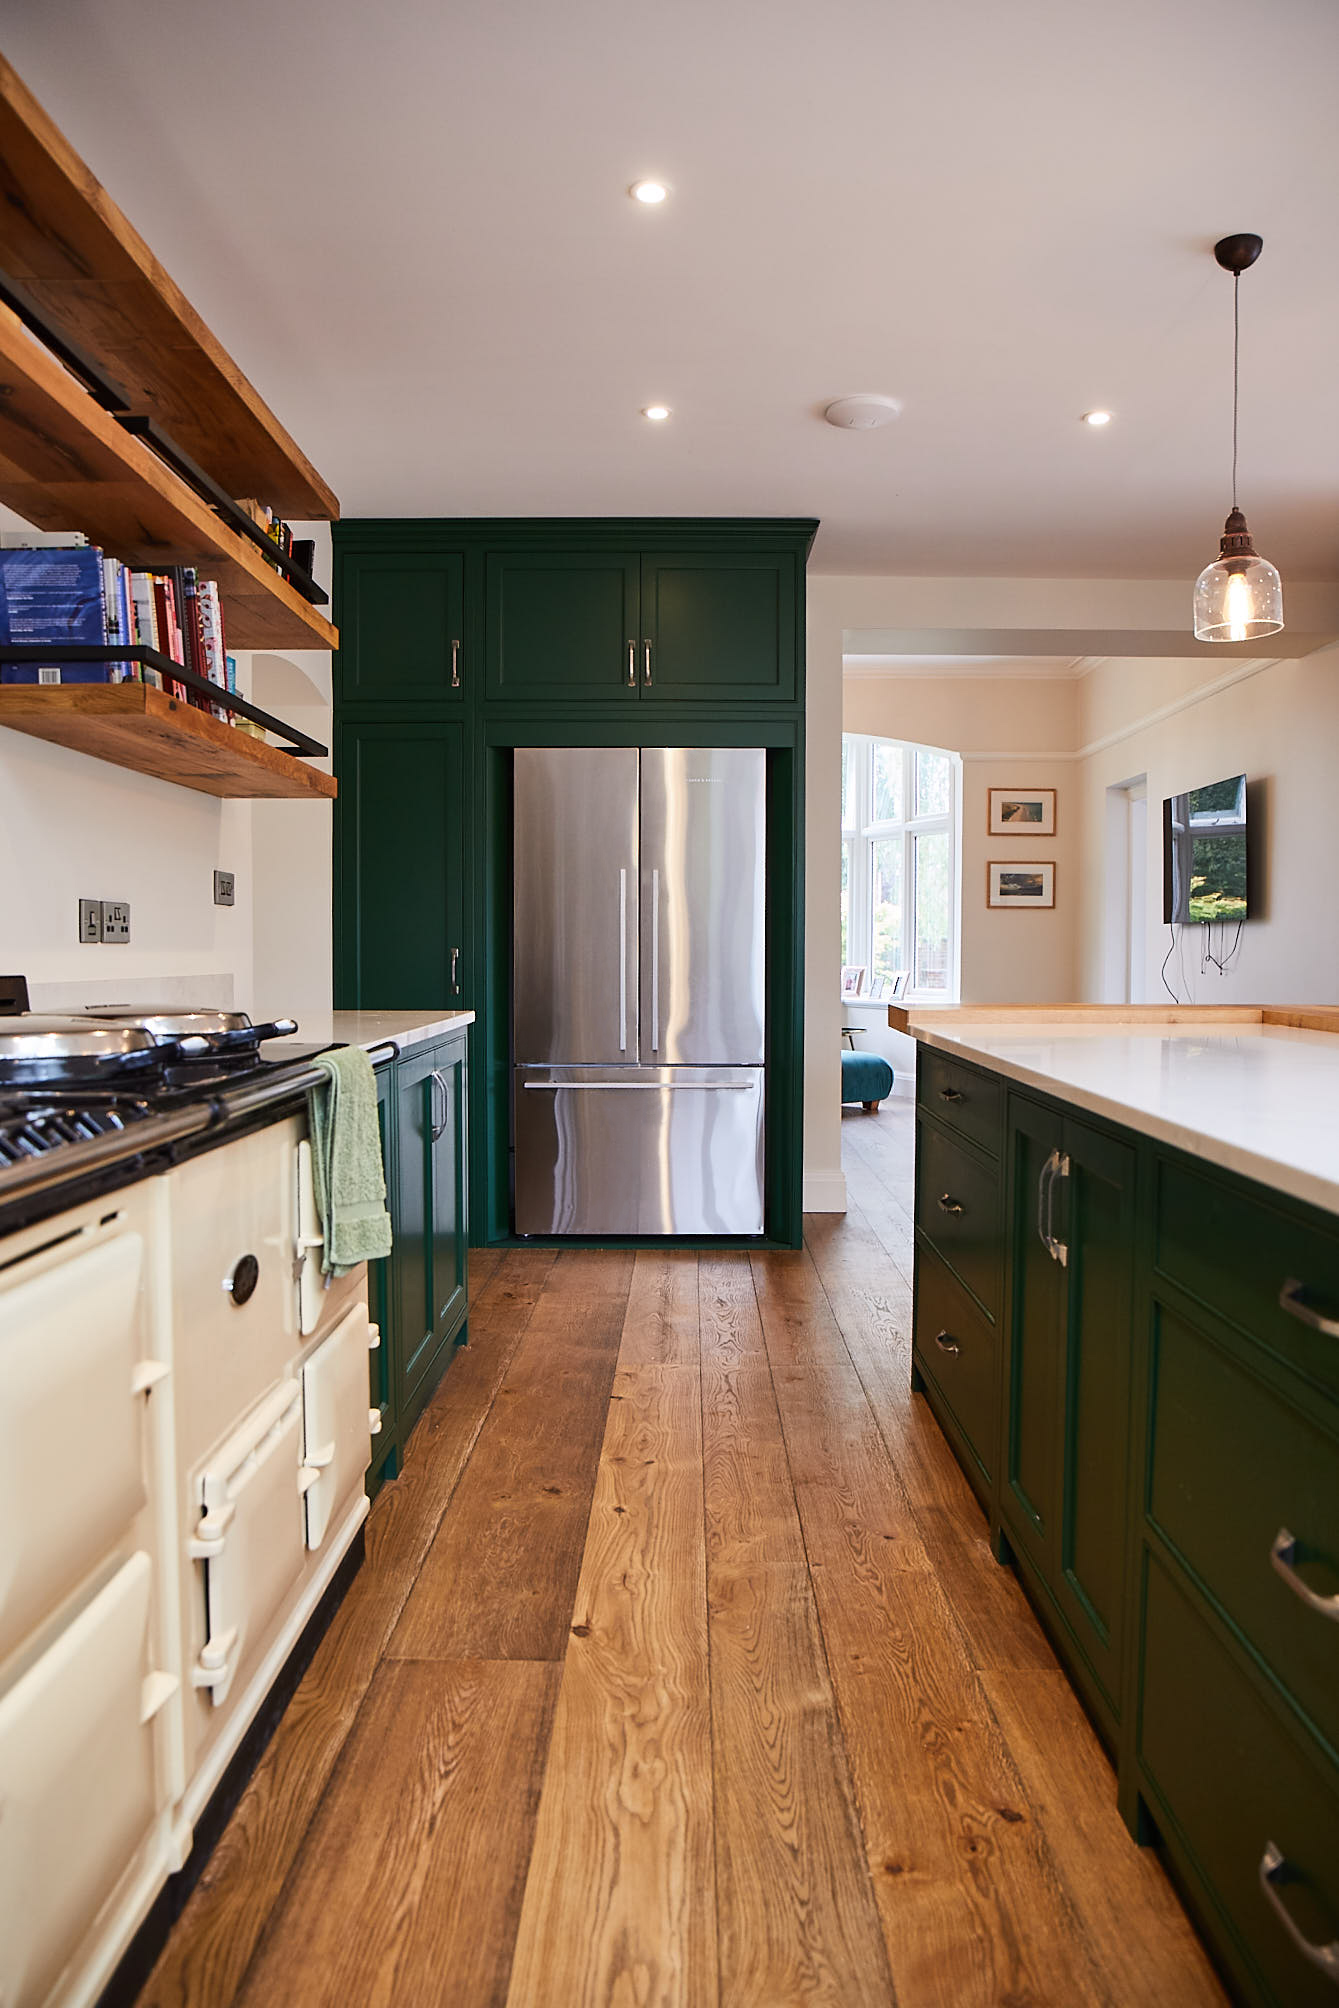 Stainless steel Fisher Paykel frindge freezer with green painted kitchen cabinets and oak flooring